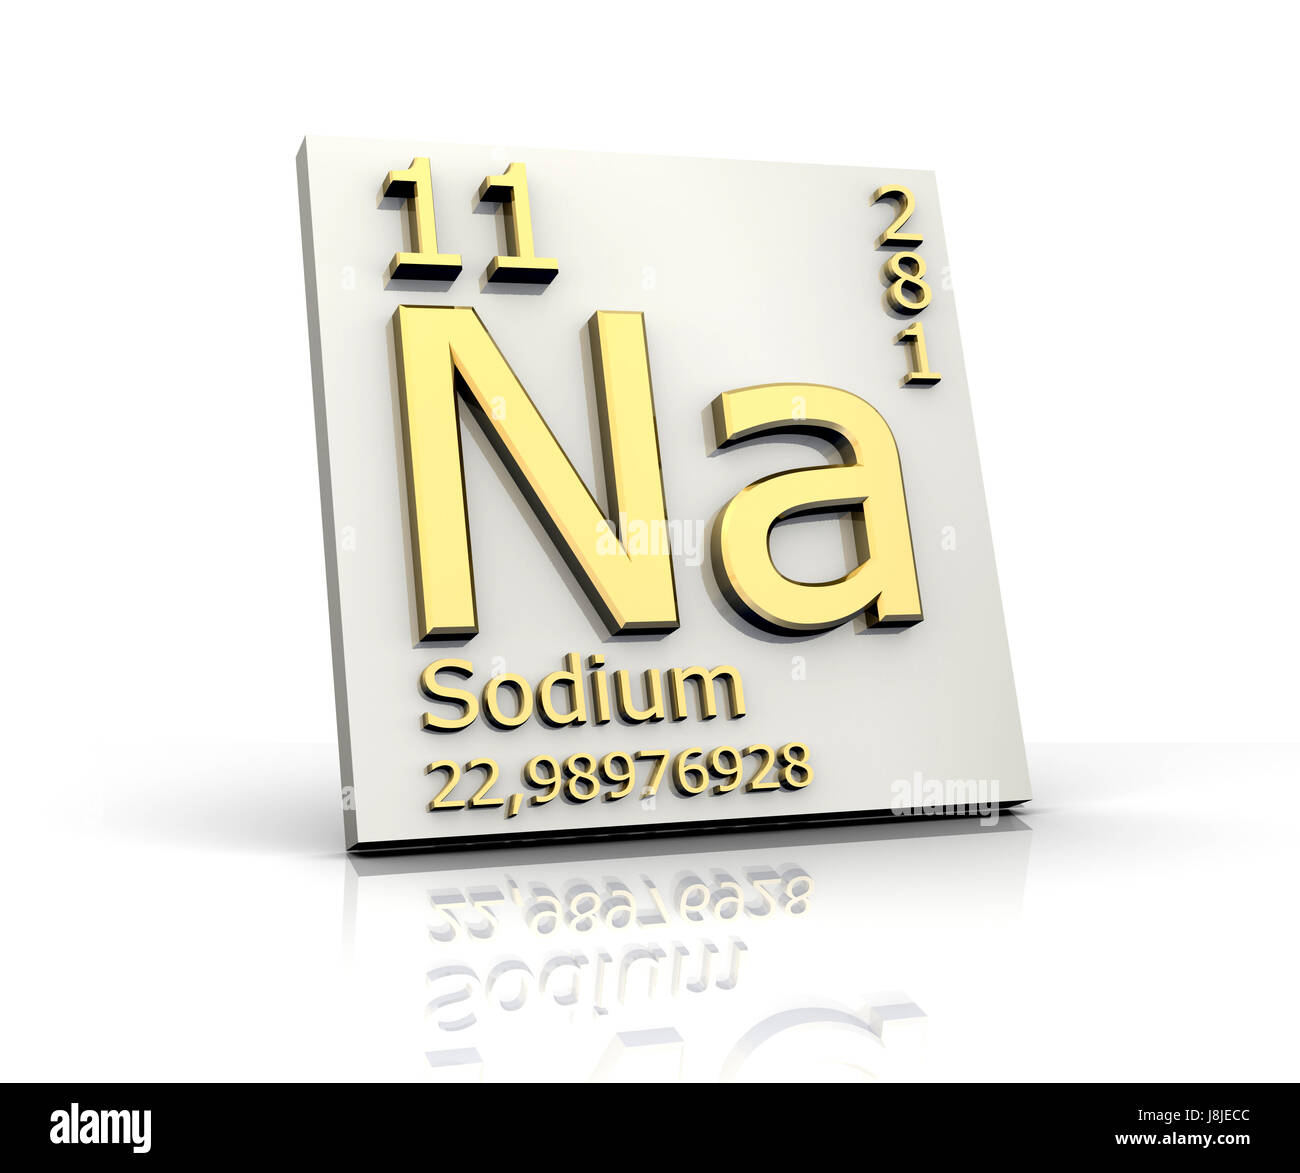 Element sodium periodical periodic table study salt board stock photo element sodium periodical periodic table study salt board education gamestrikefo Image collections